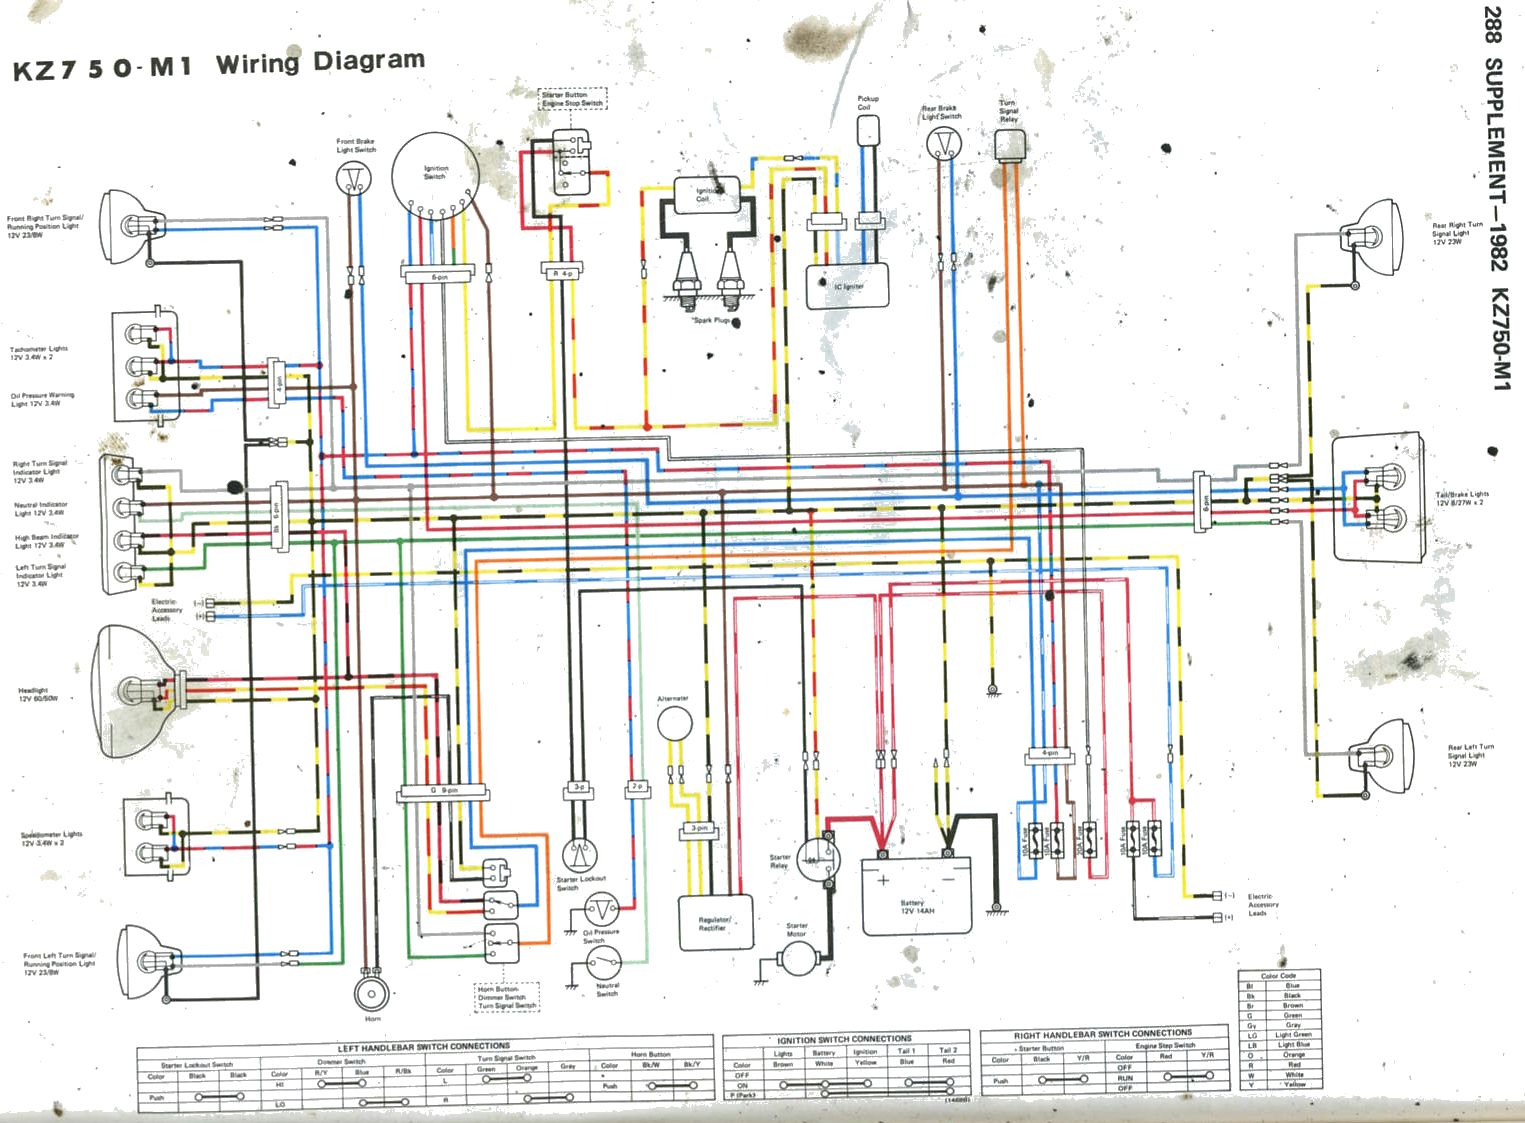 hight resolution of kz1000 shaft wiring diagram wiring diagram expert 82 kz1000 wiring diagram